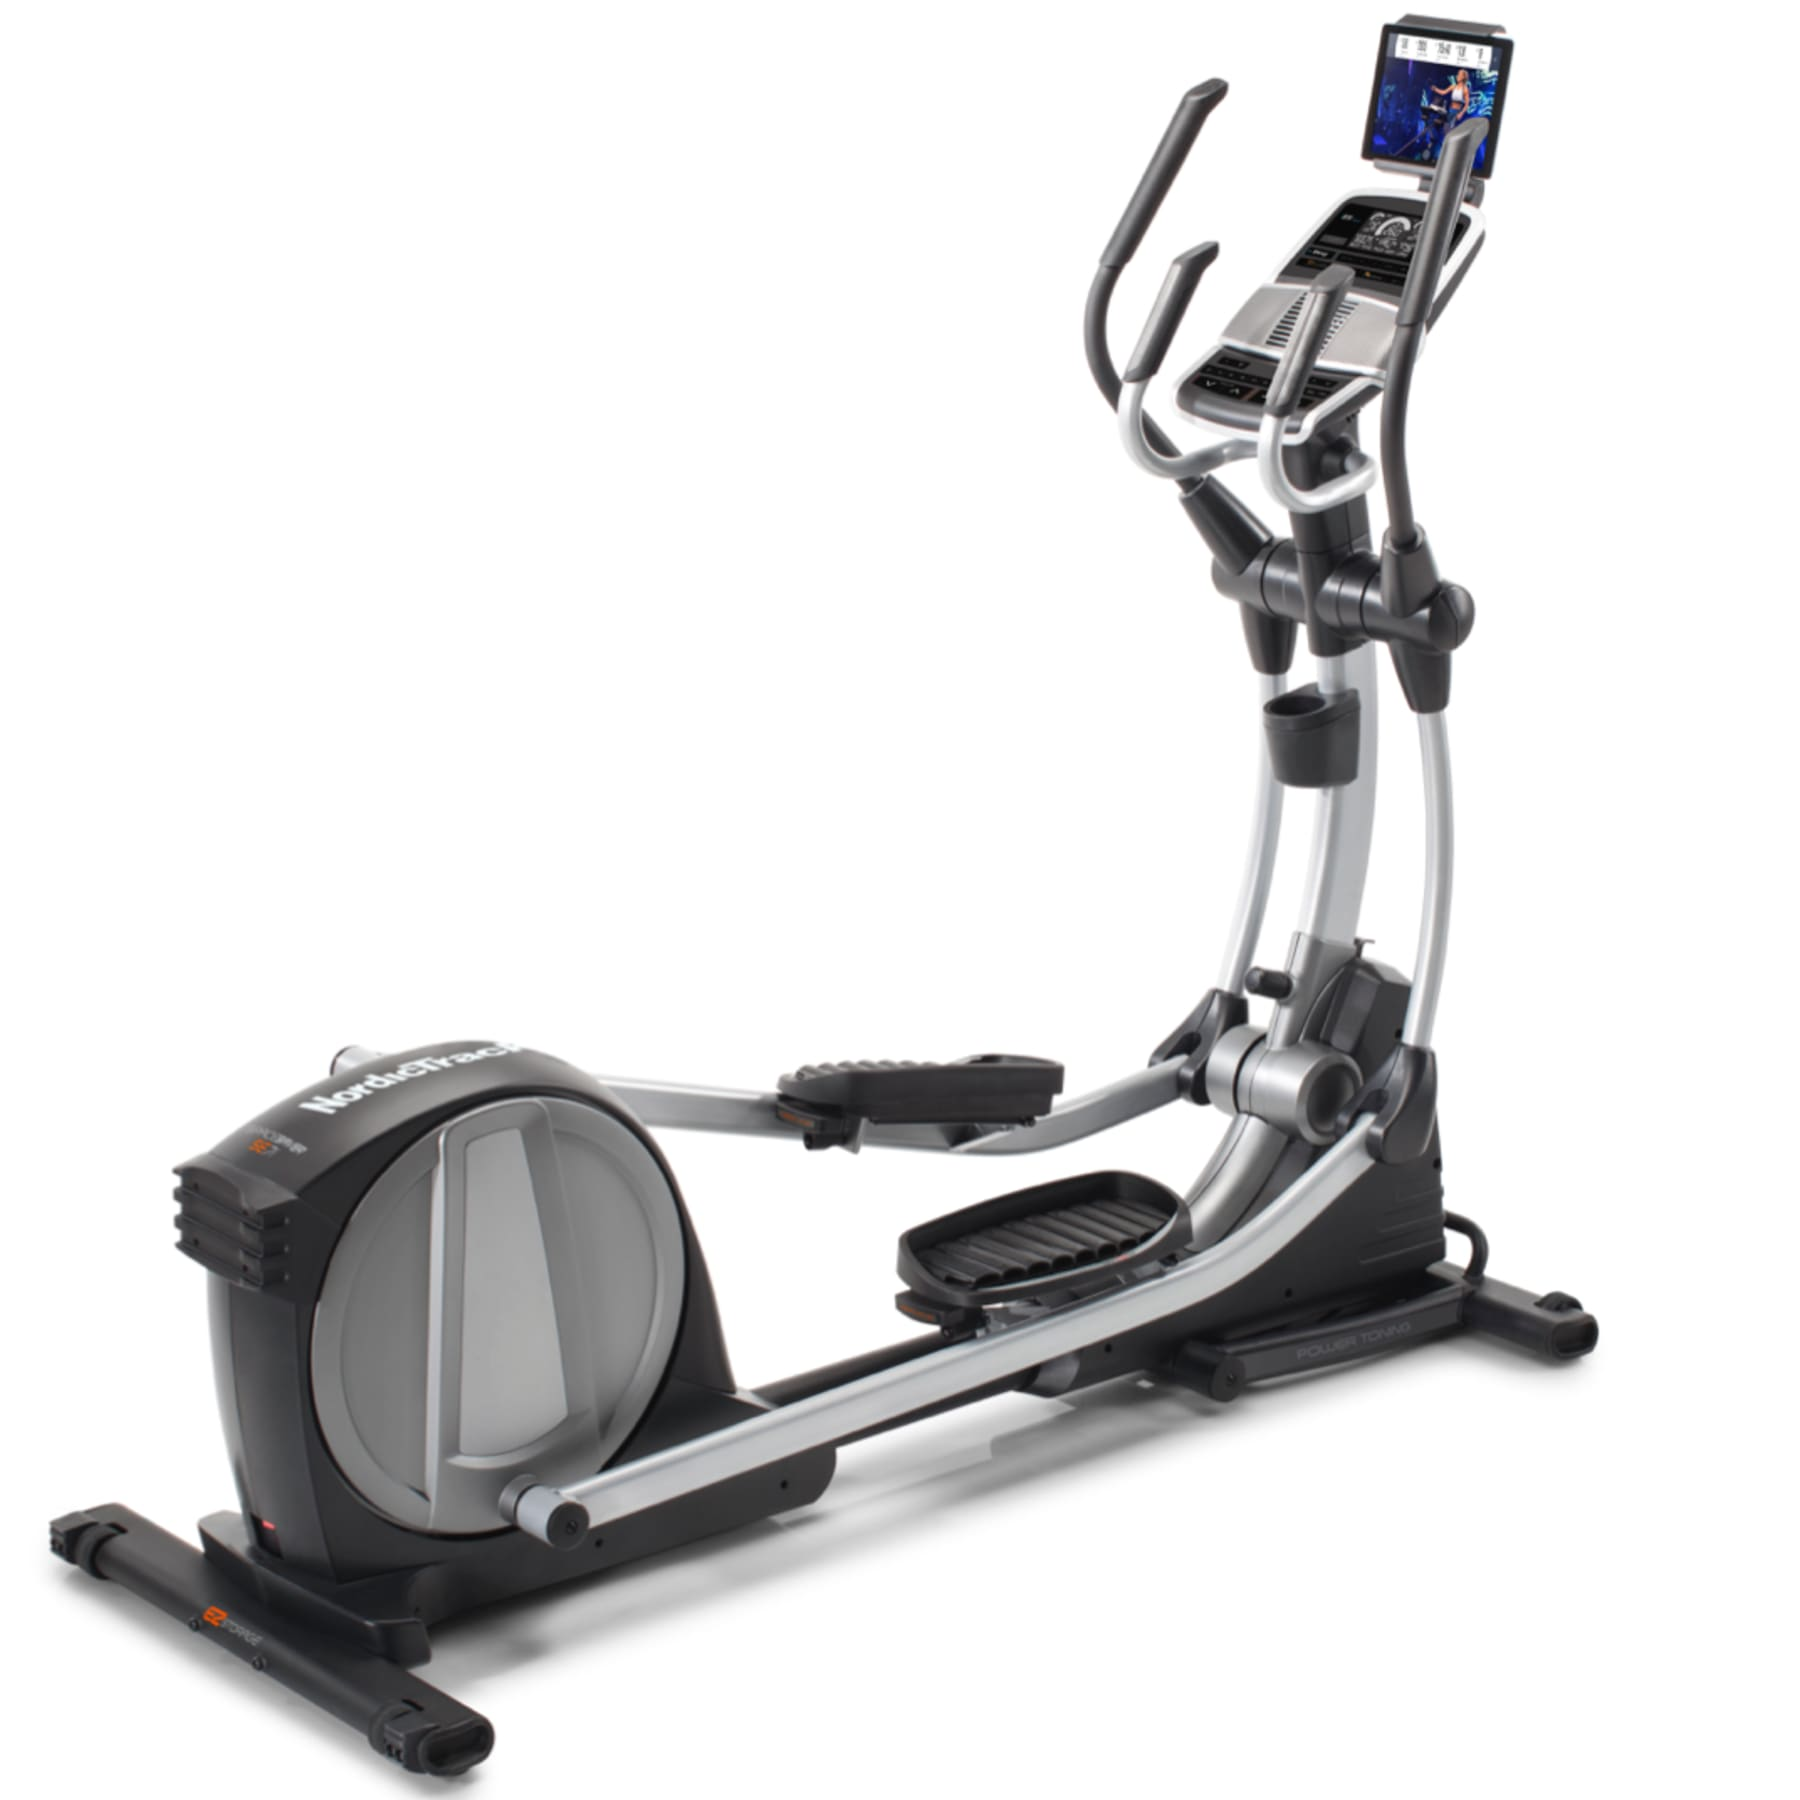 NordicTrack SpaceSaver SE7i Elliptical | NordicTrack